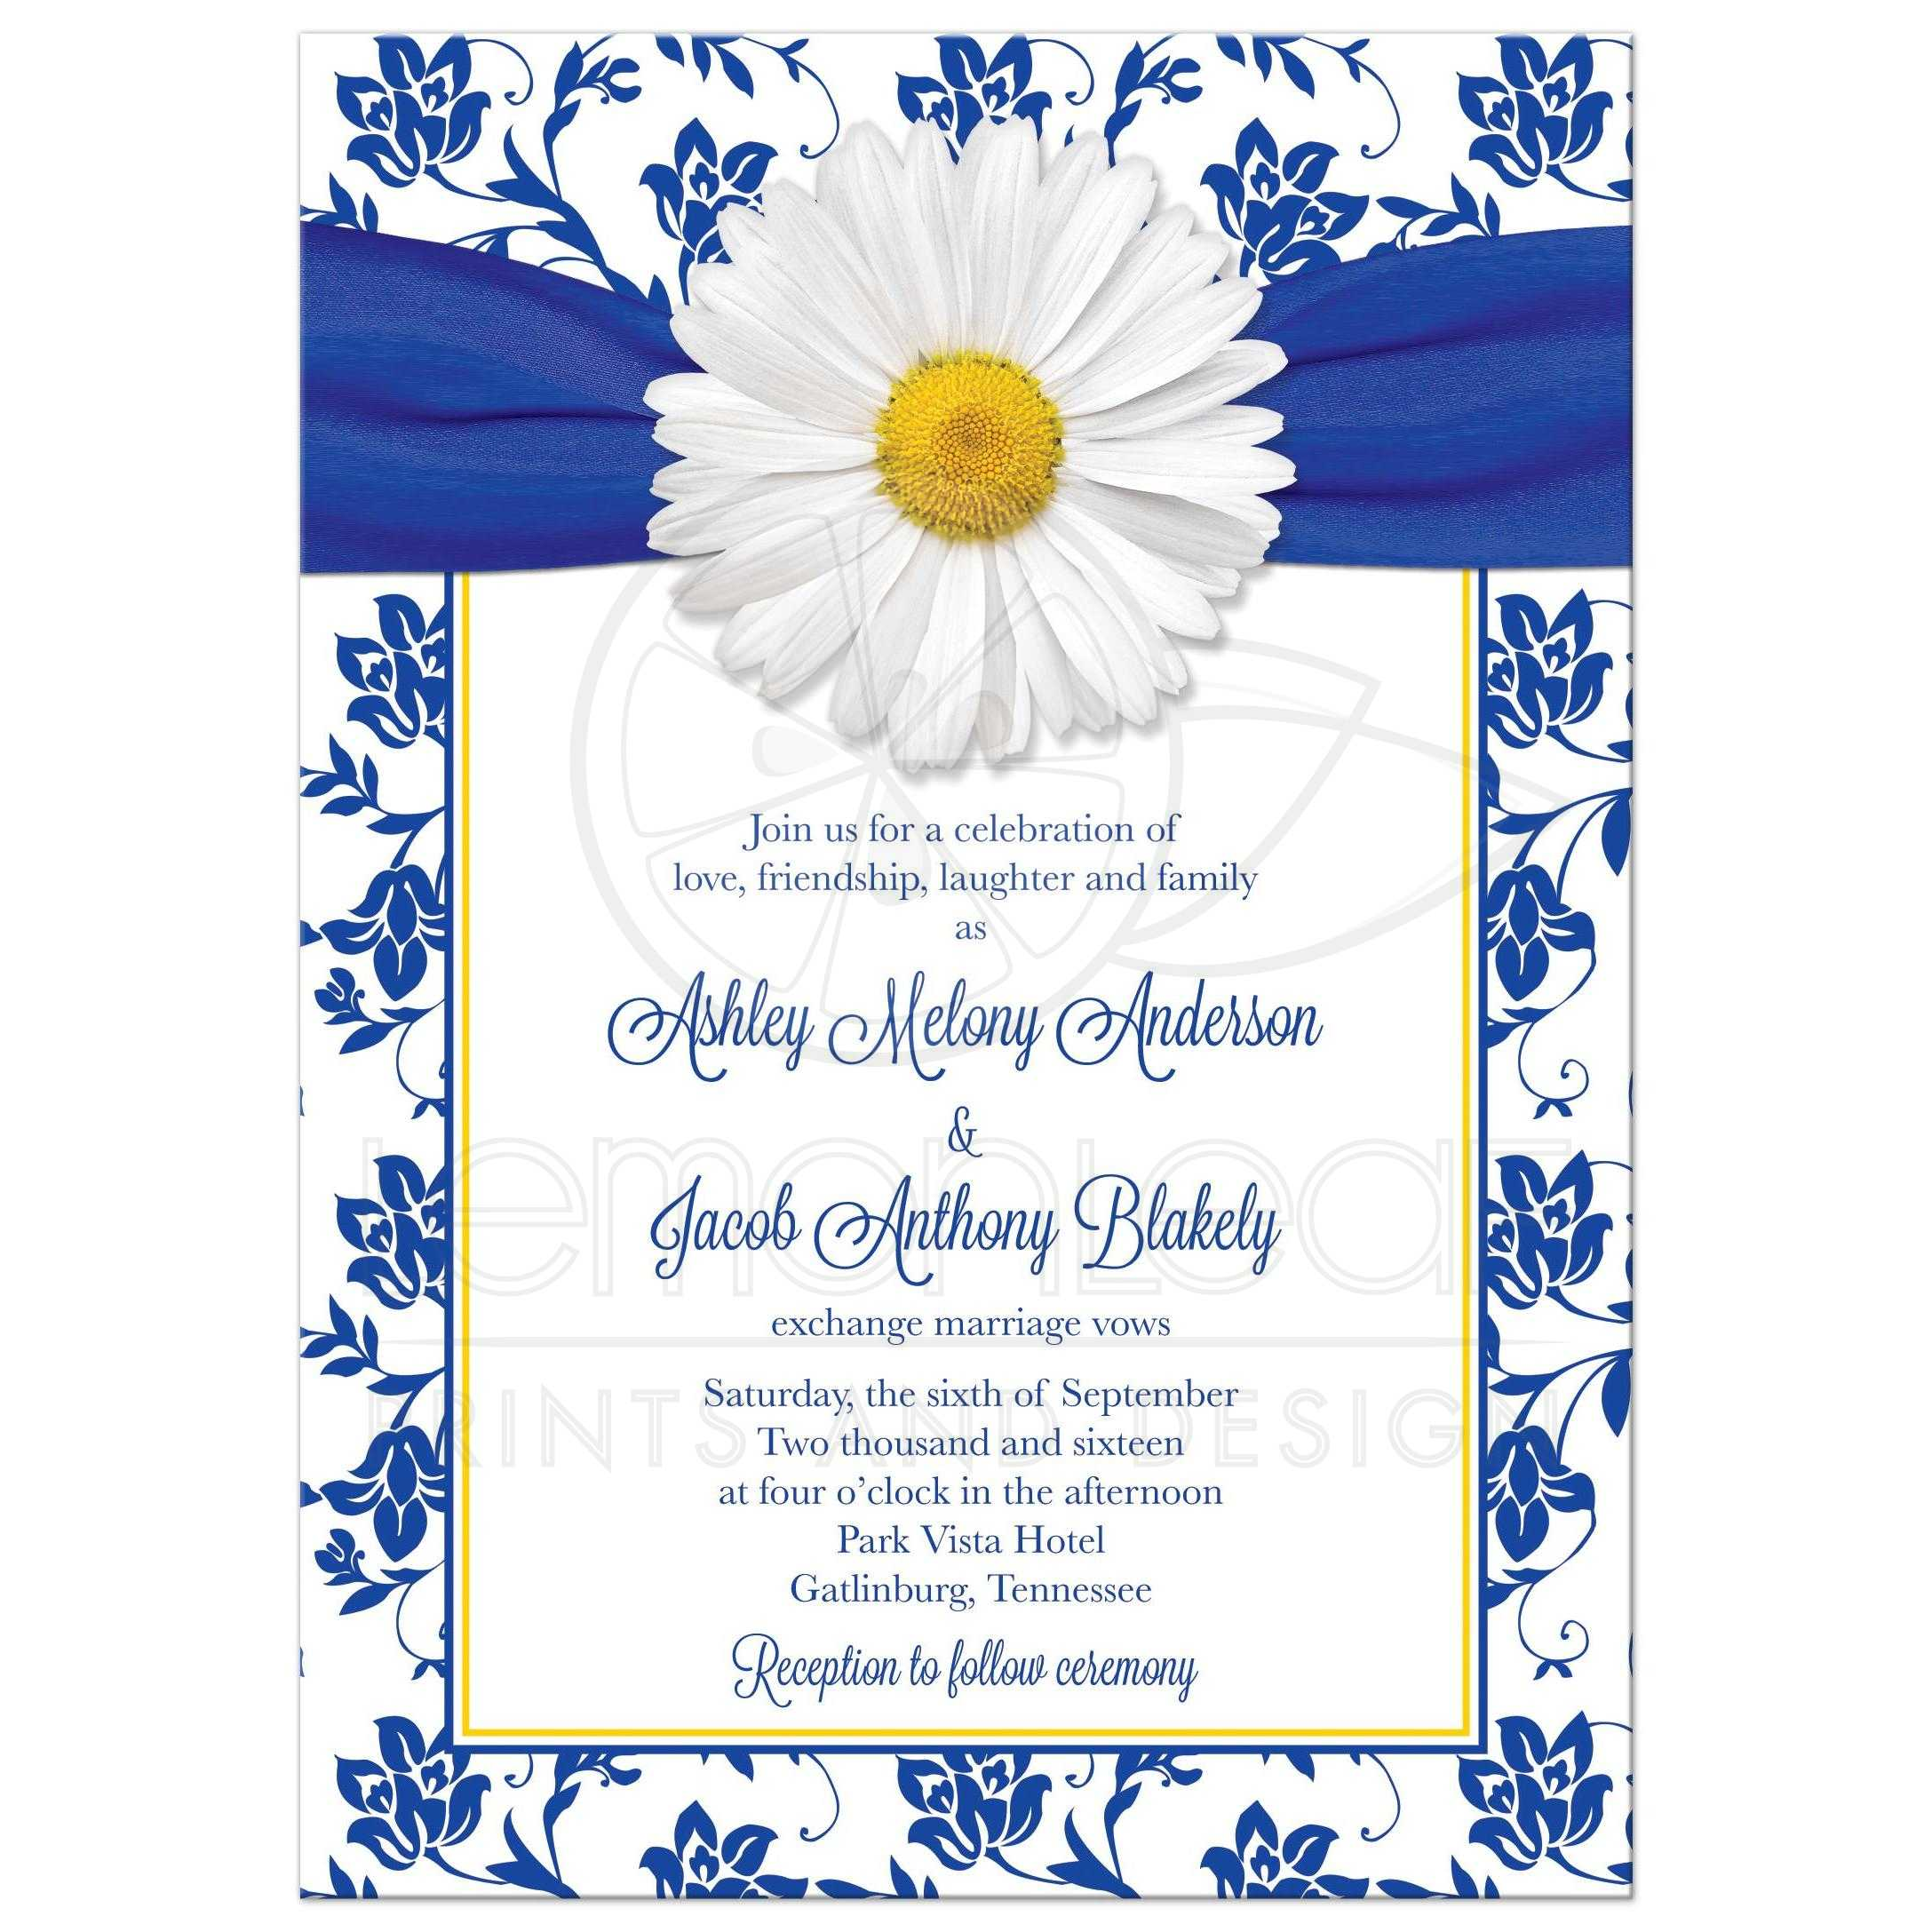 White Shasta Daisy And Royal Blue Floral Damask Ribbon Wedding Invitation Front: Royal Blue Wedding Invitation Set At Websimilar.org